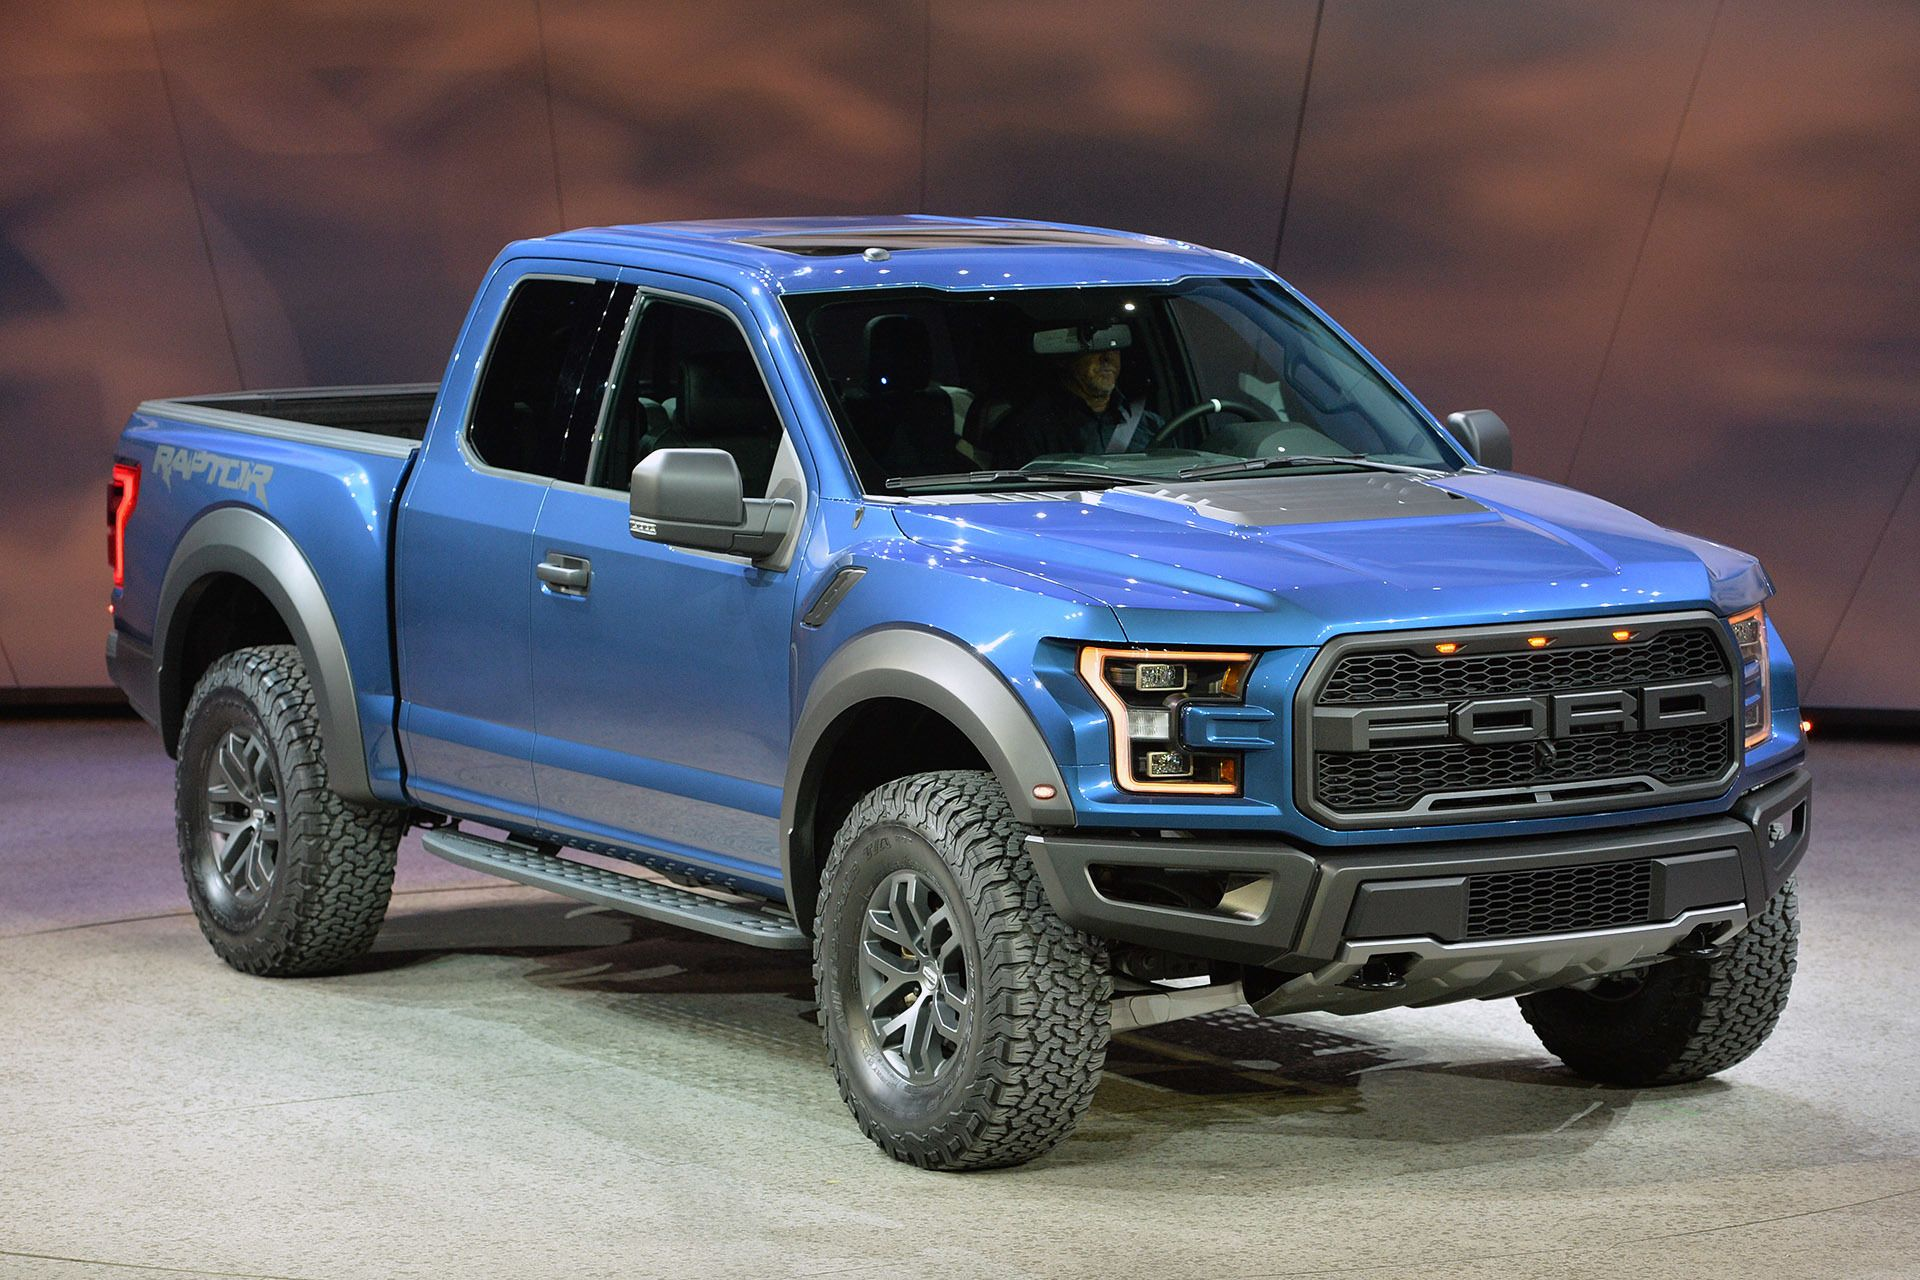 Ford F 150 Raptor Gets Ecoboost V6 New Chassis And Aluminum Body W Videos Ford Raptor Ford F150 Ford F150 Raptor